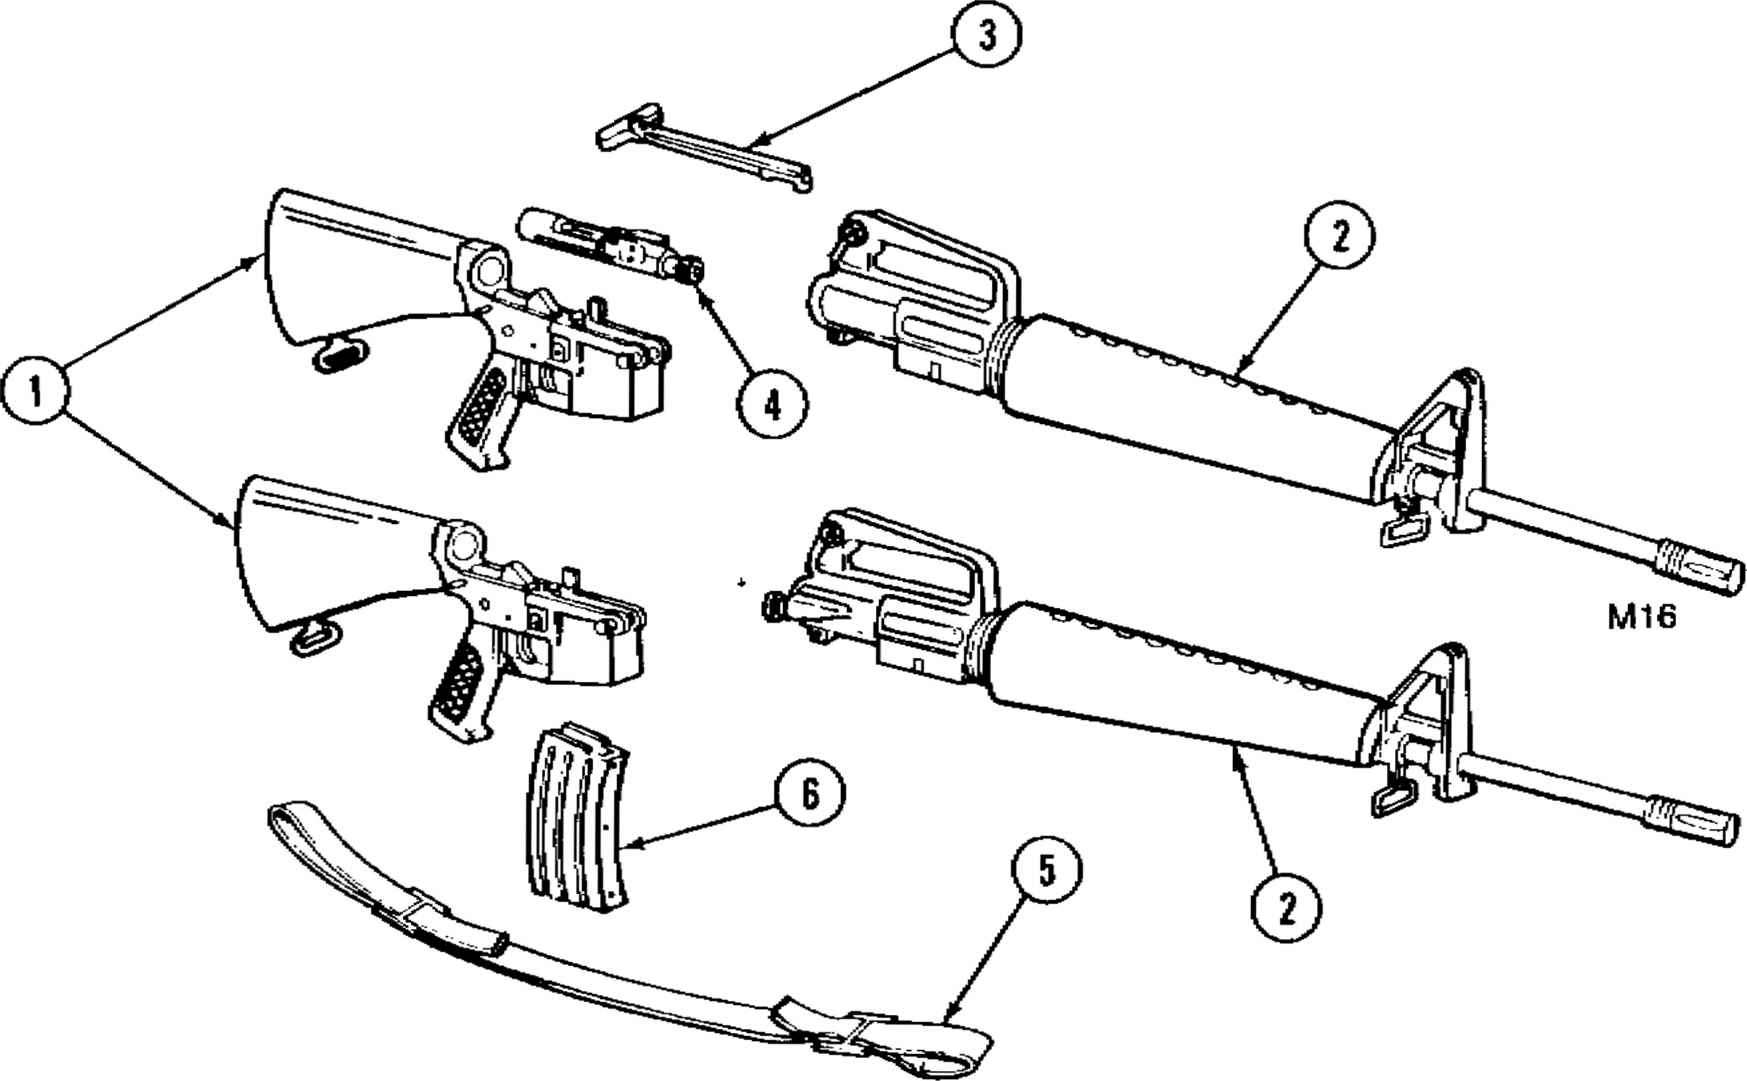 M 16 Rifle Schematic